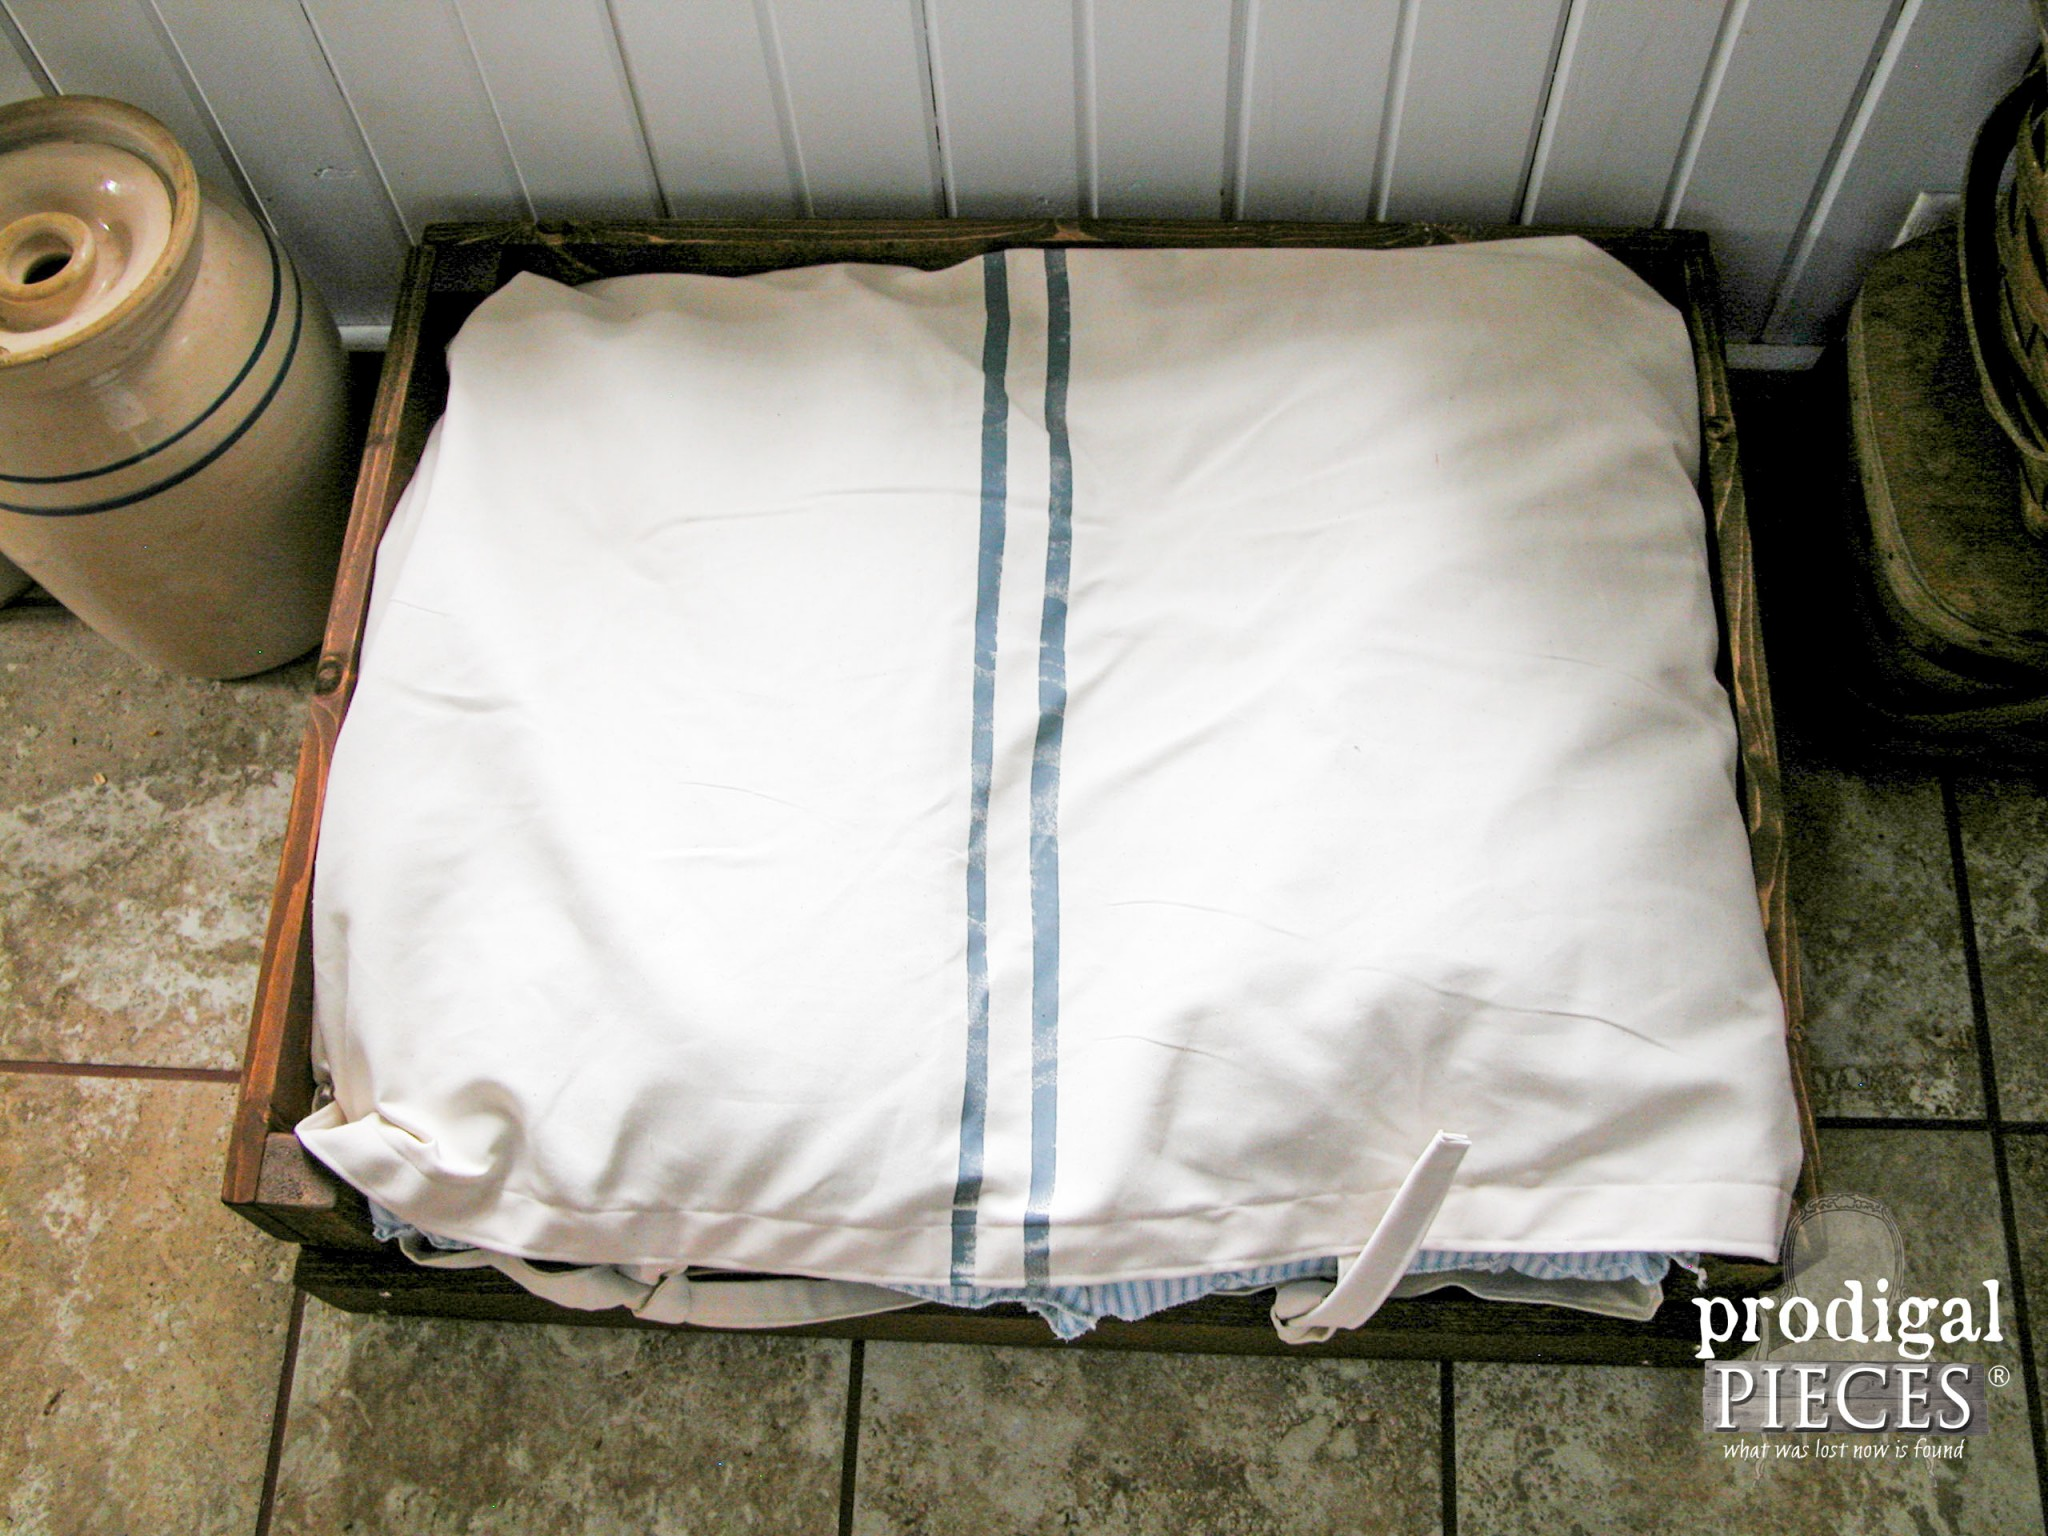 Rustic Farmhouse Style Grain Sack Pet Bed by Prodigal Pieces | www.progigalpieces.com